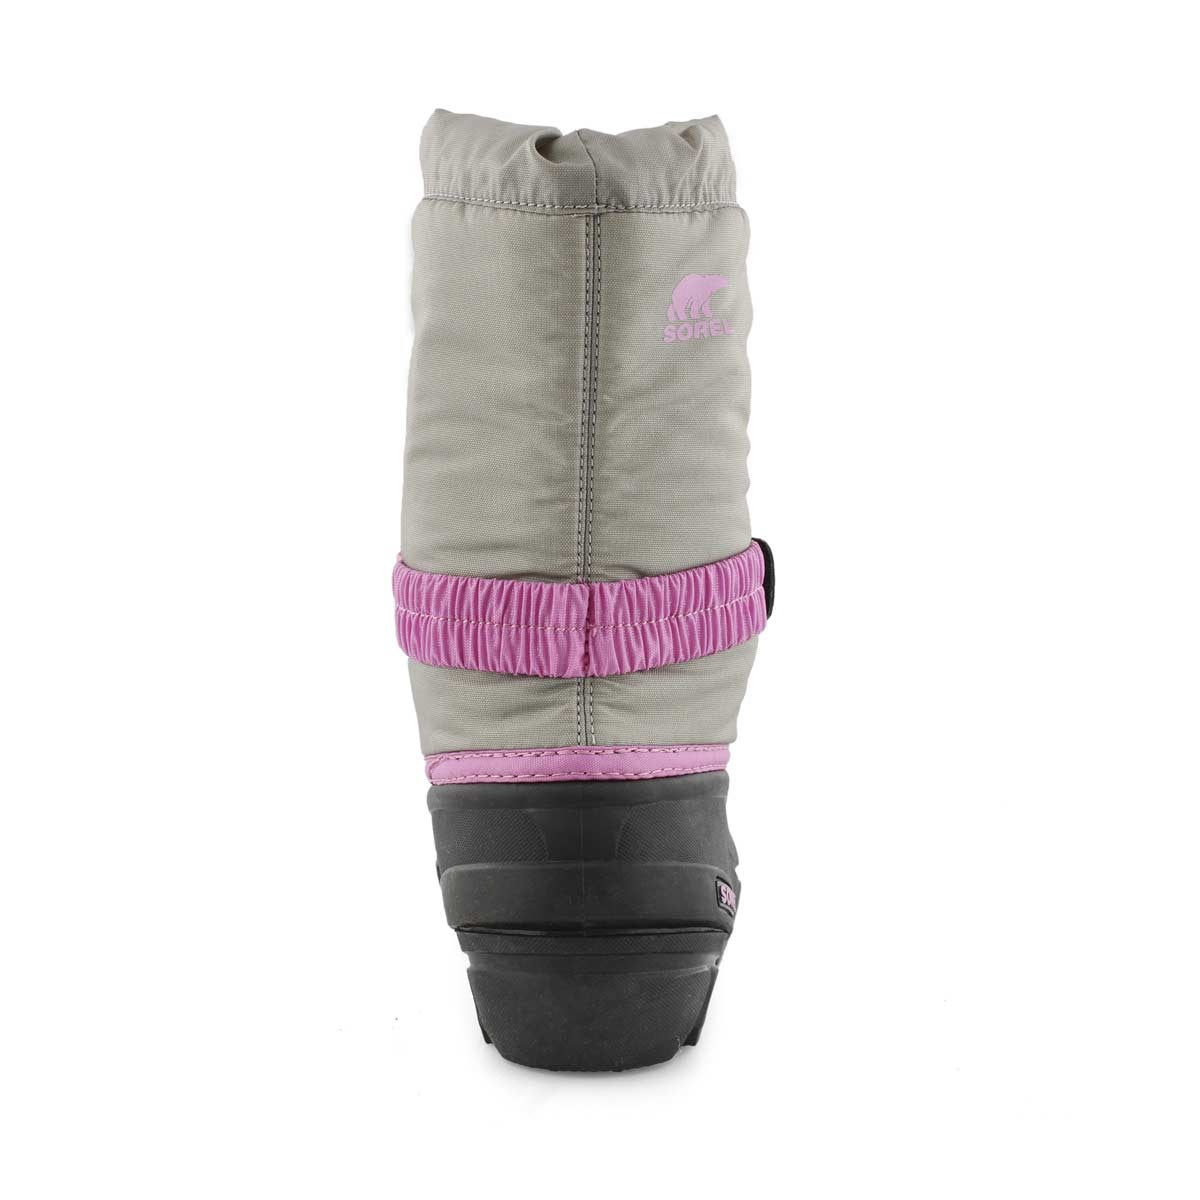 Grls Flurry chrm gry pull on winter boot